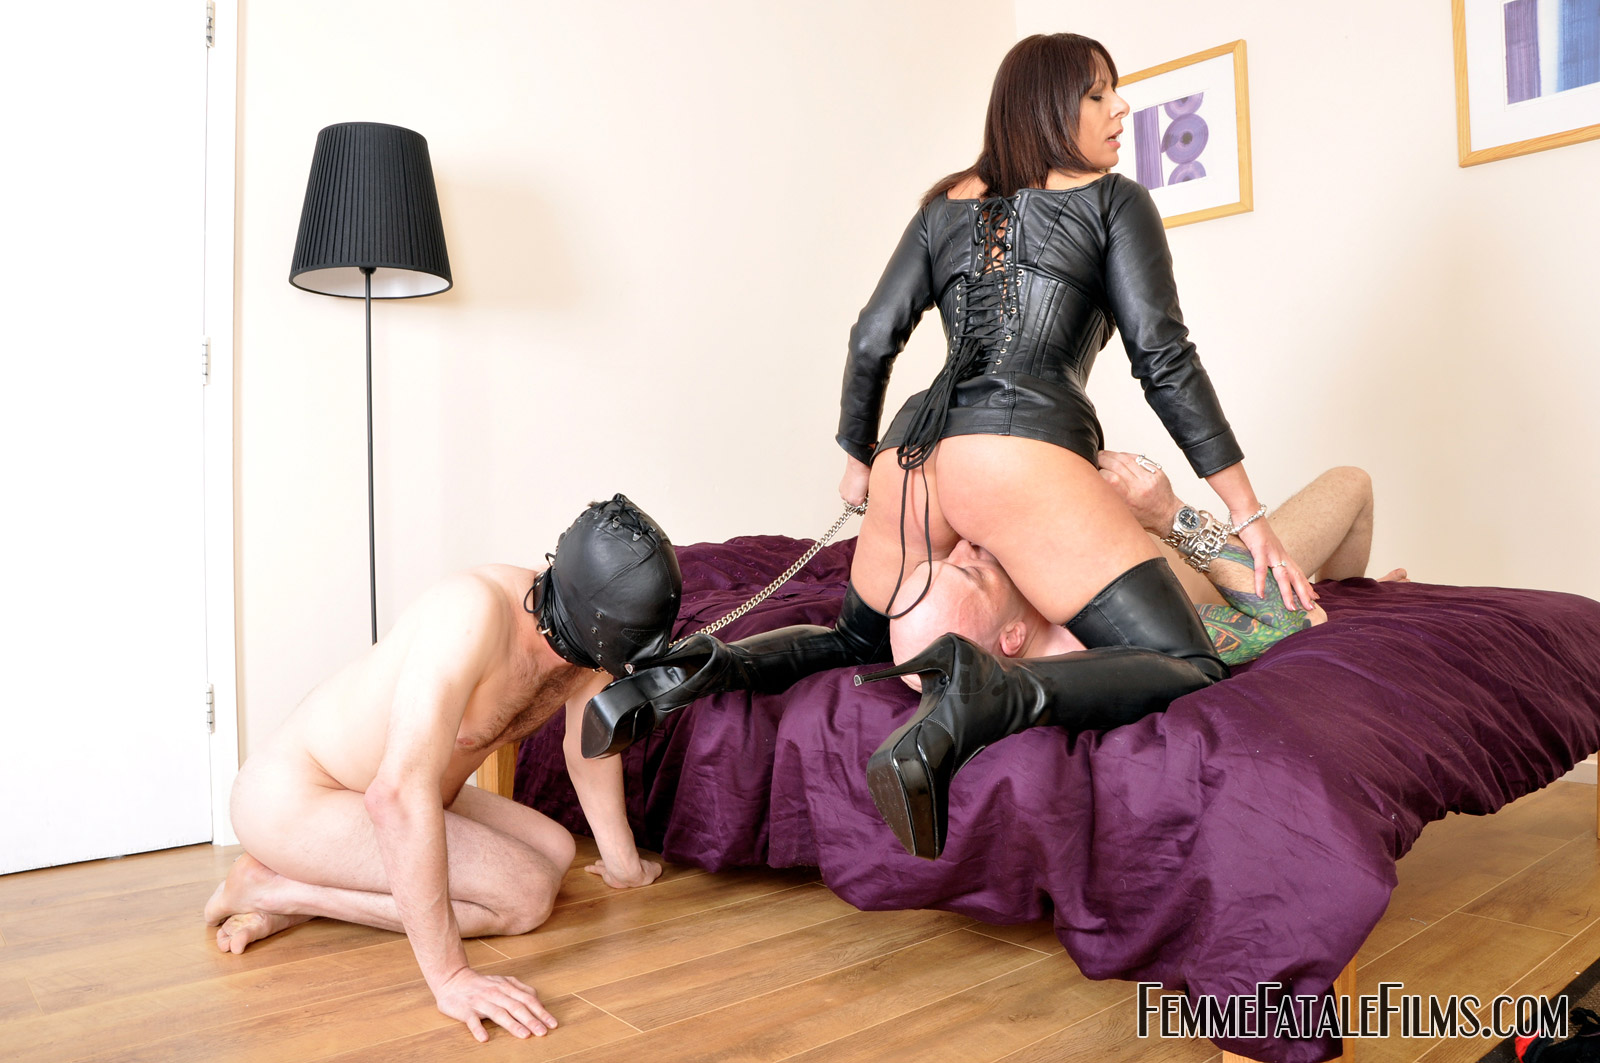 Superior blowjob using her mouth and tongue - 3 5